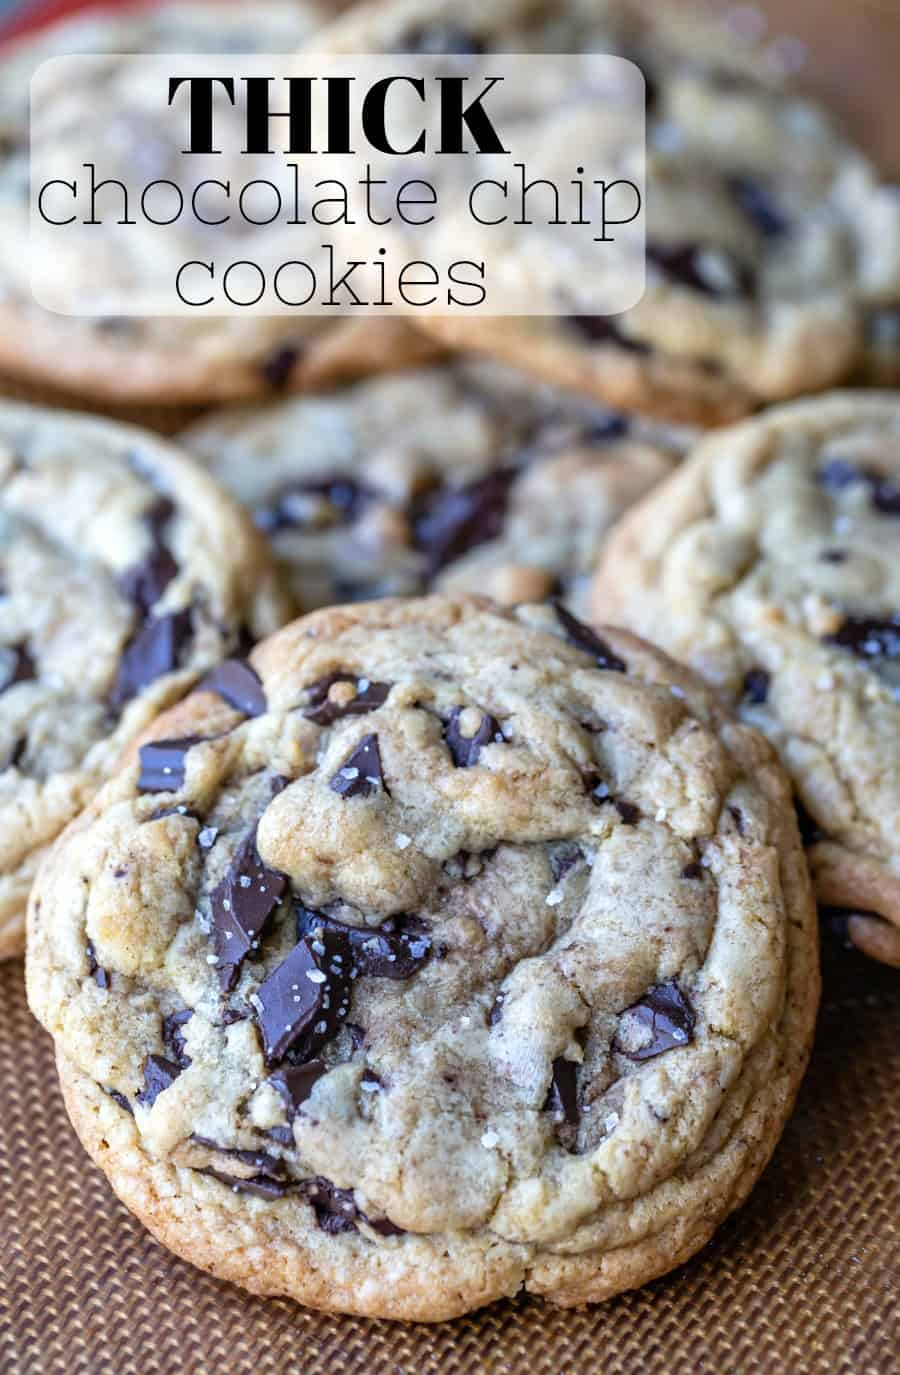 This recipe makes the best thick homemade chocolate chip cookies with soft middles and chewy/crisp edges. Best way to make bakery style cookies at home! 